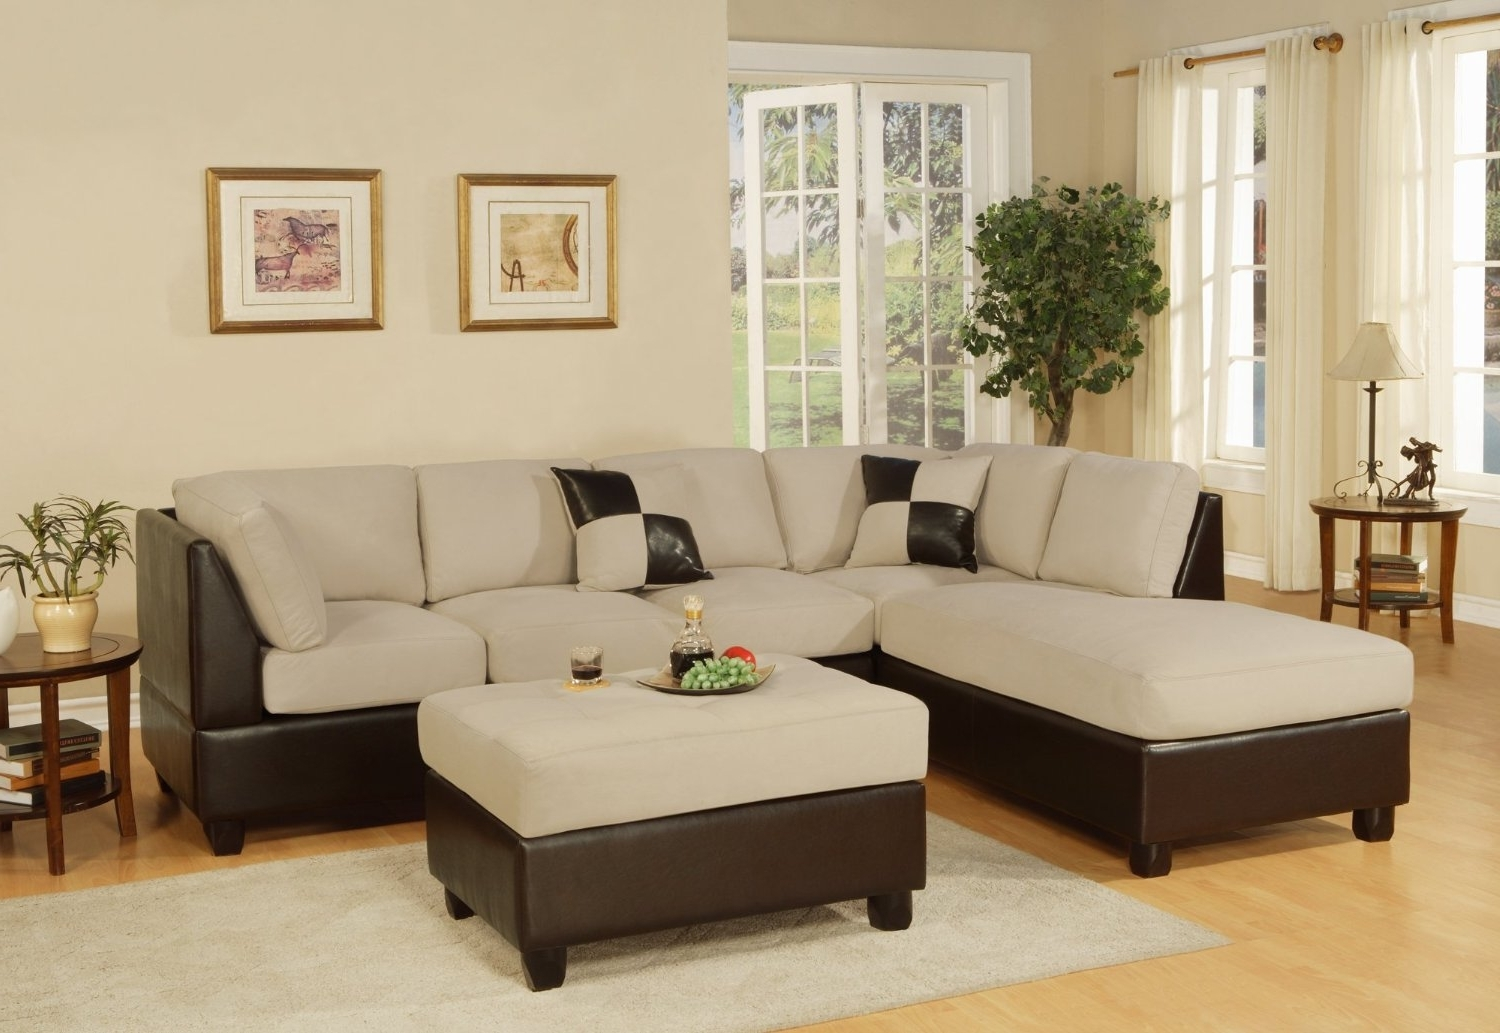 Erie Pa Sectional Sofas With Trendy Furniture : Sectional Sofa 80 X 80 Corner Sofa Extension Sectional (Gallery 16 of 20)